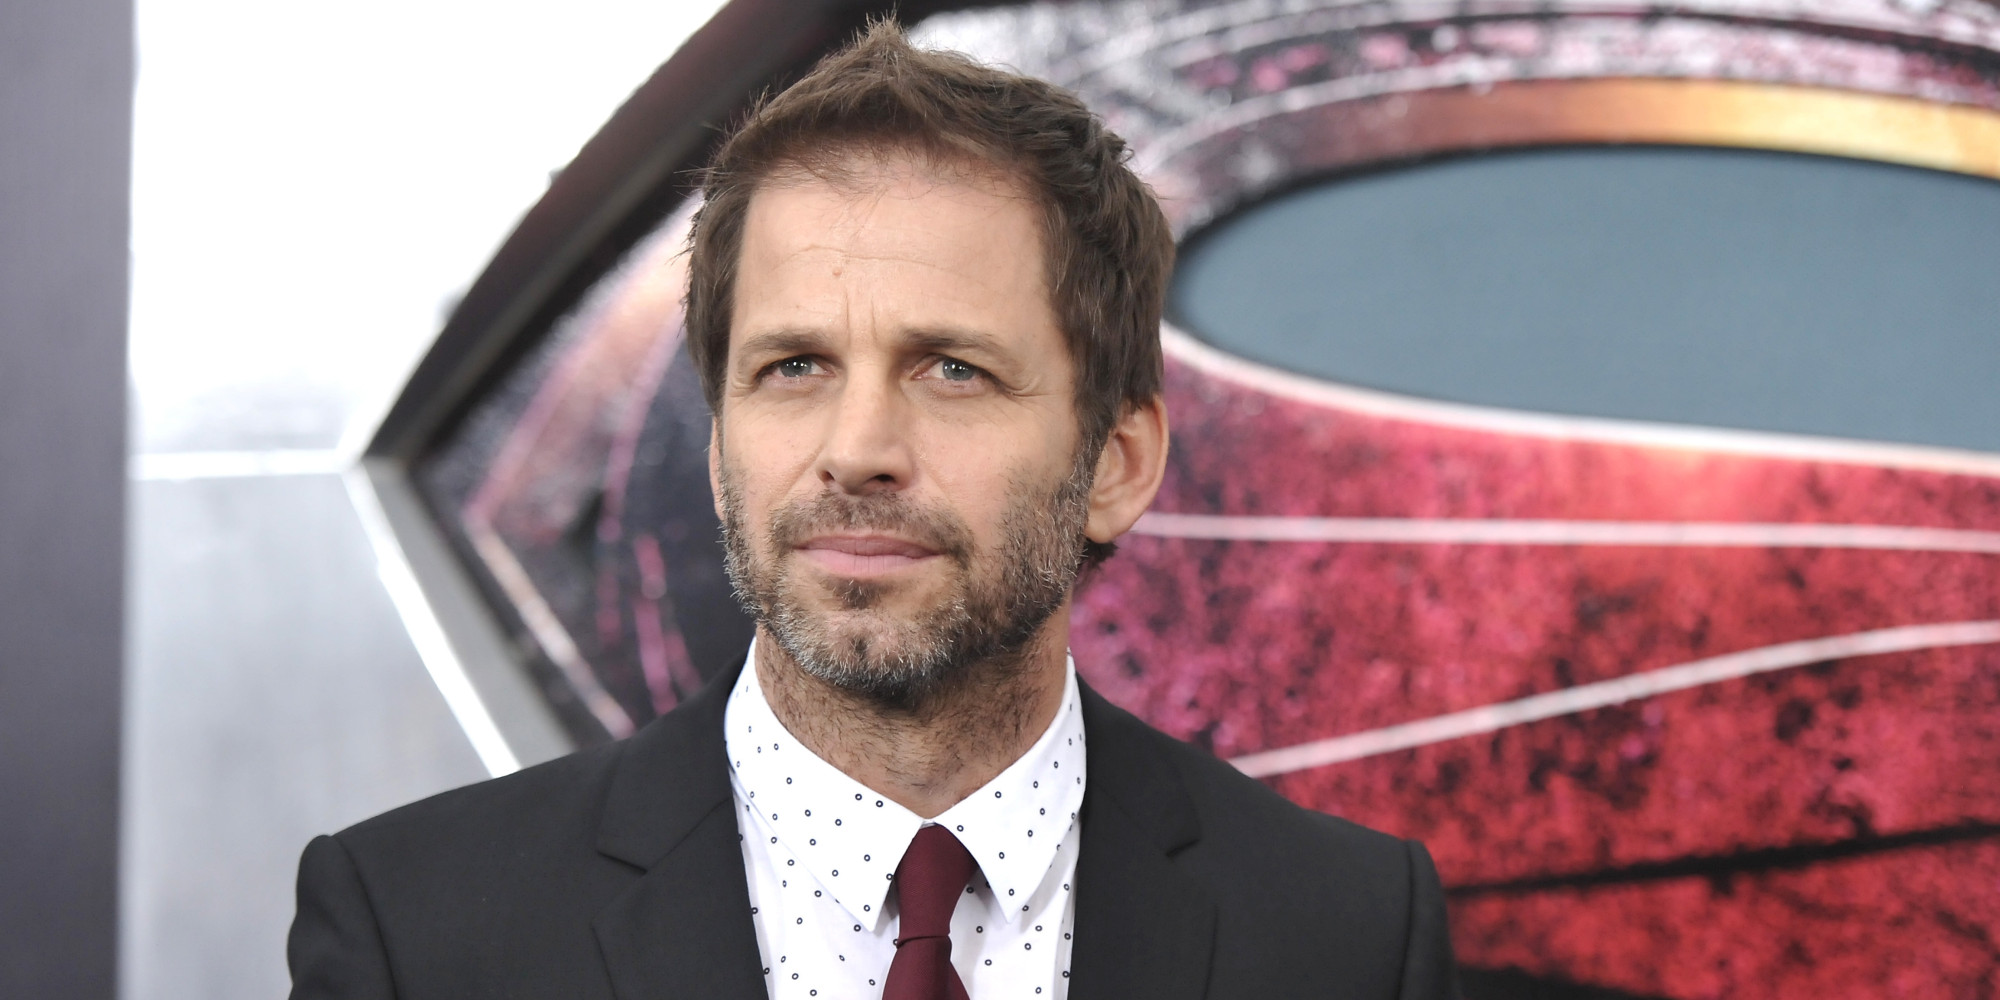 ack Snyder Steps Off Justice League Movie